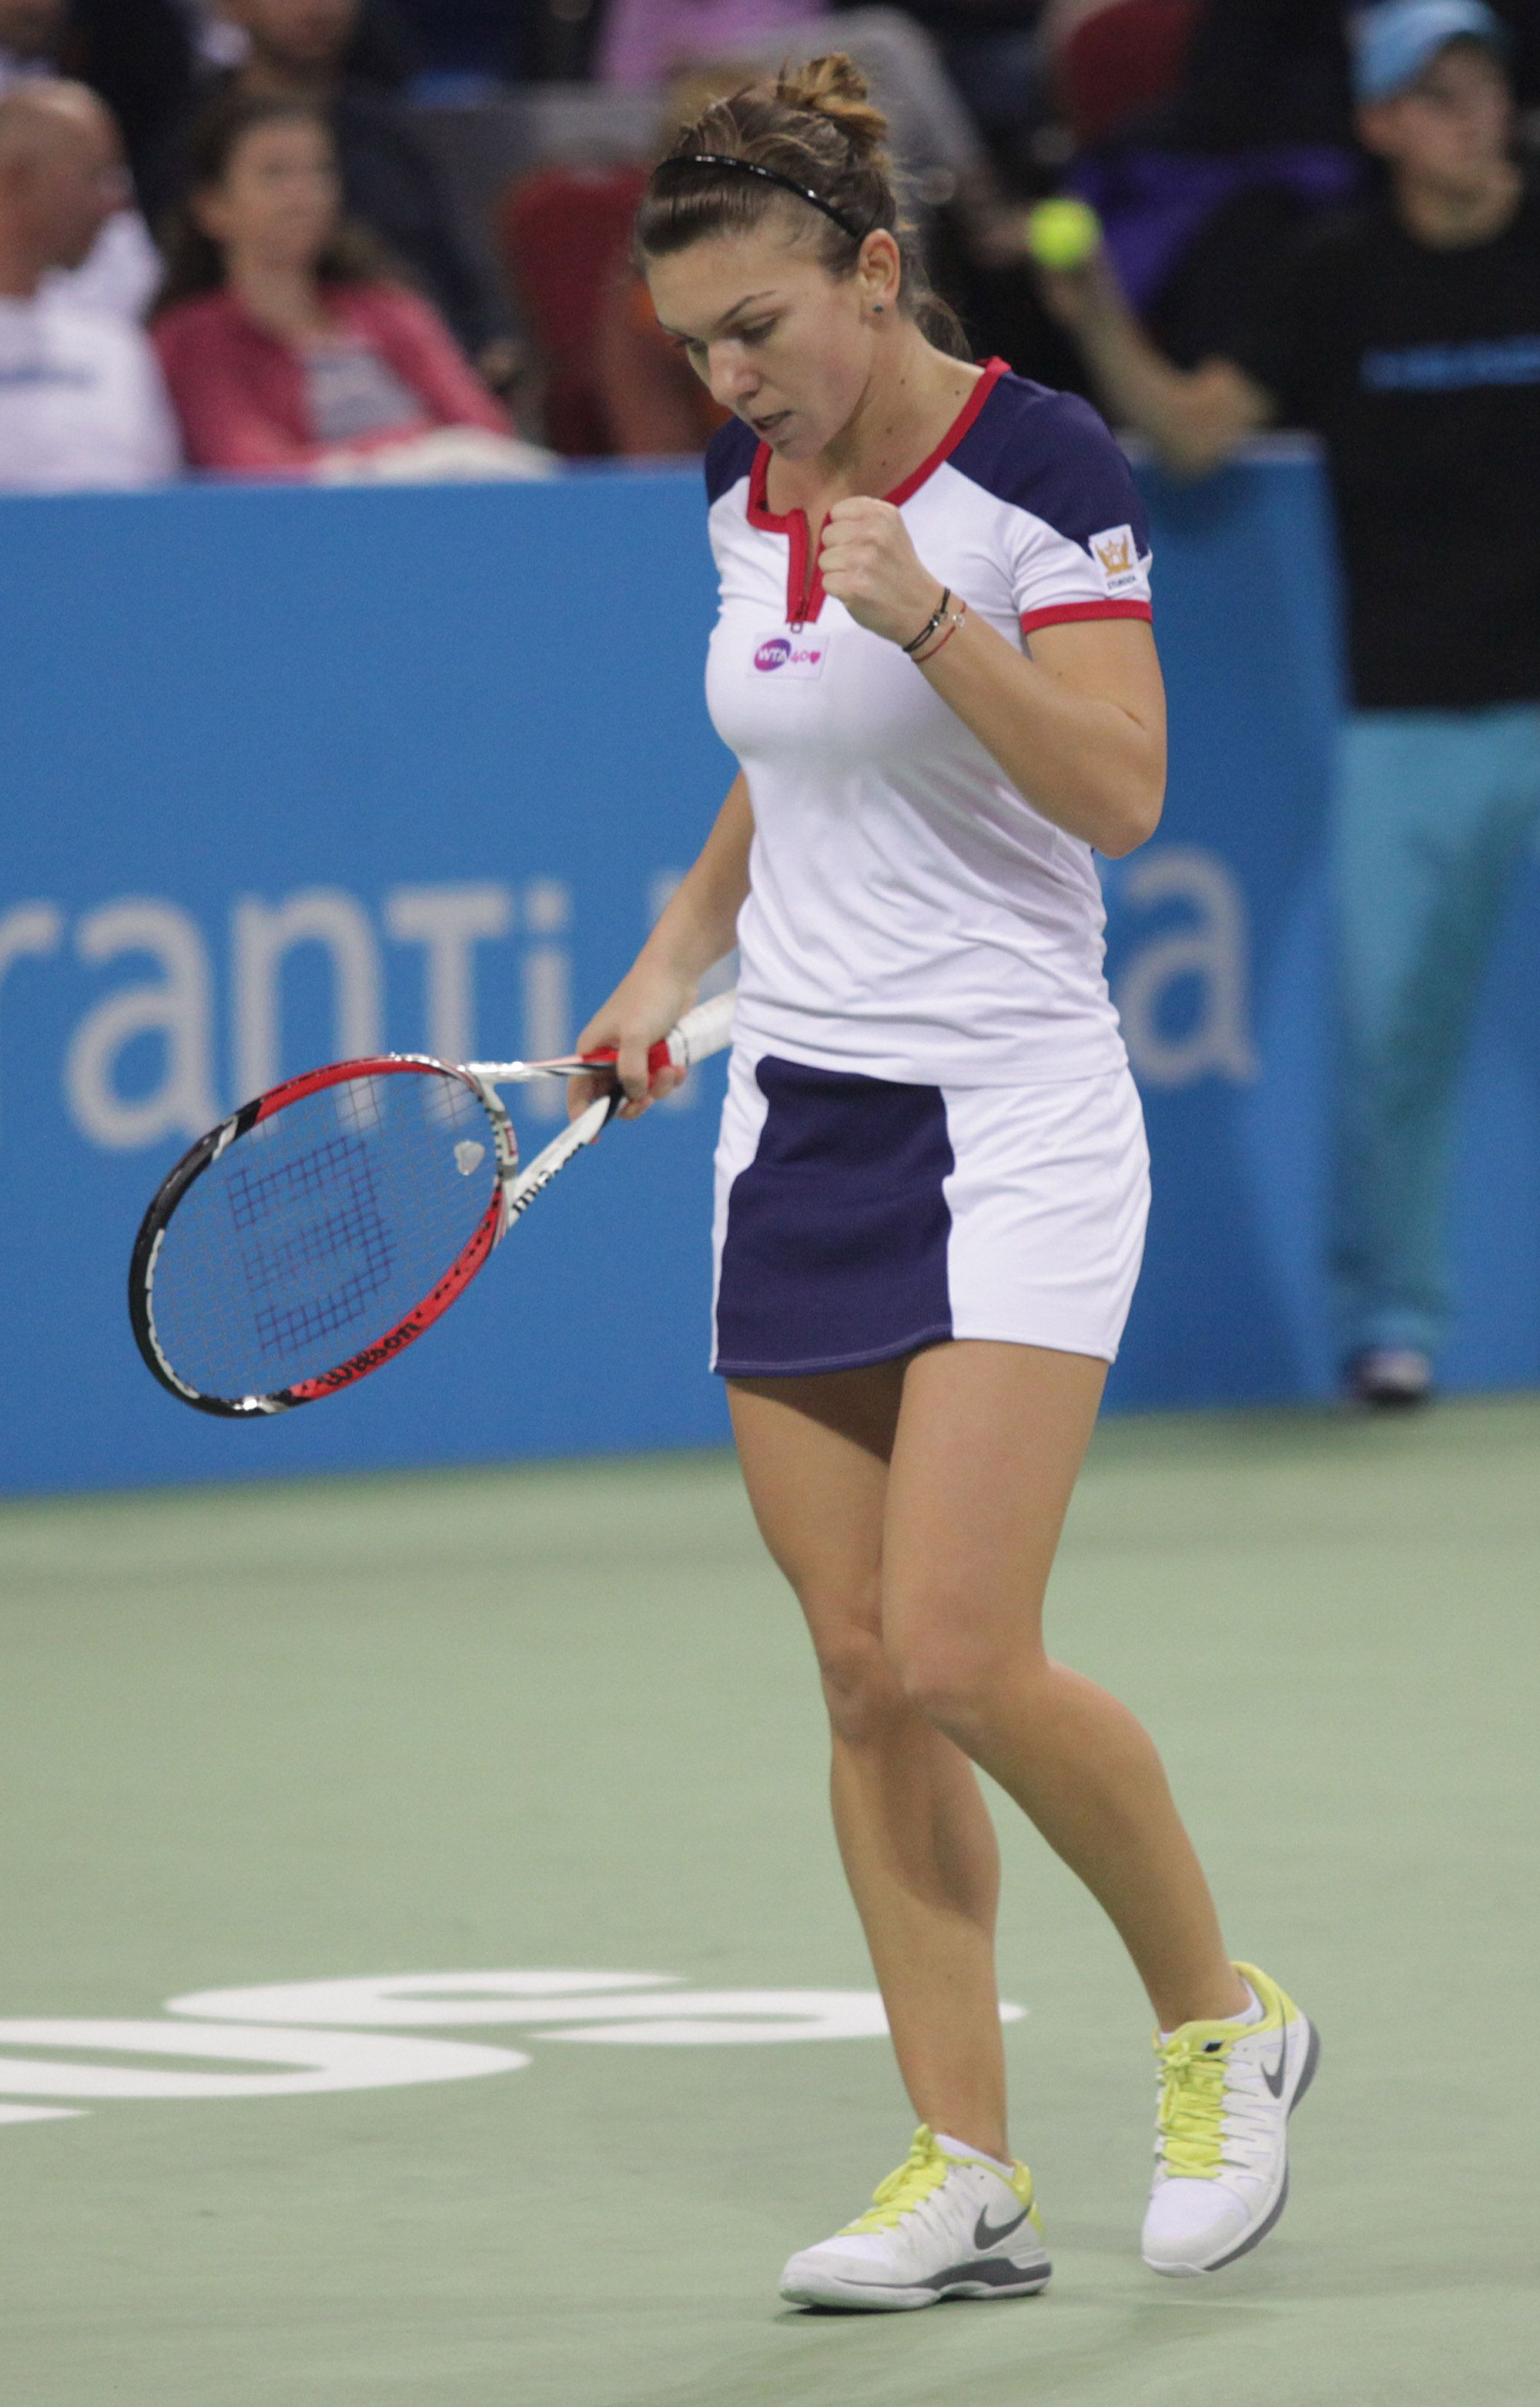 Ana Ivanovic Nue 2013 wta tournament of champions sfs: #1-seed simona halep